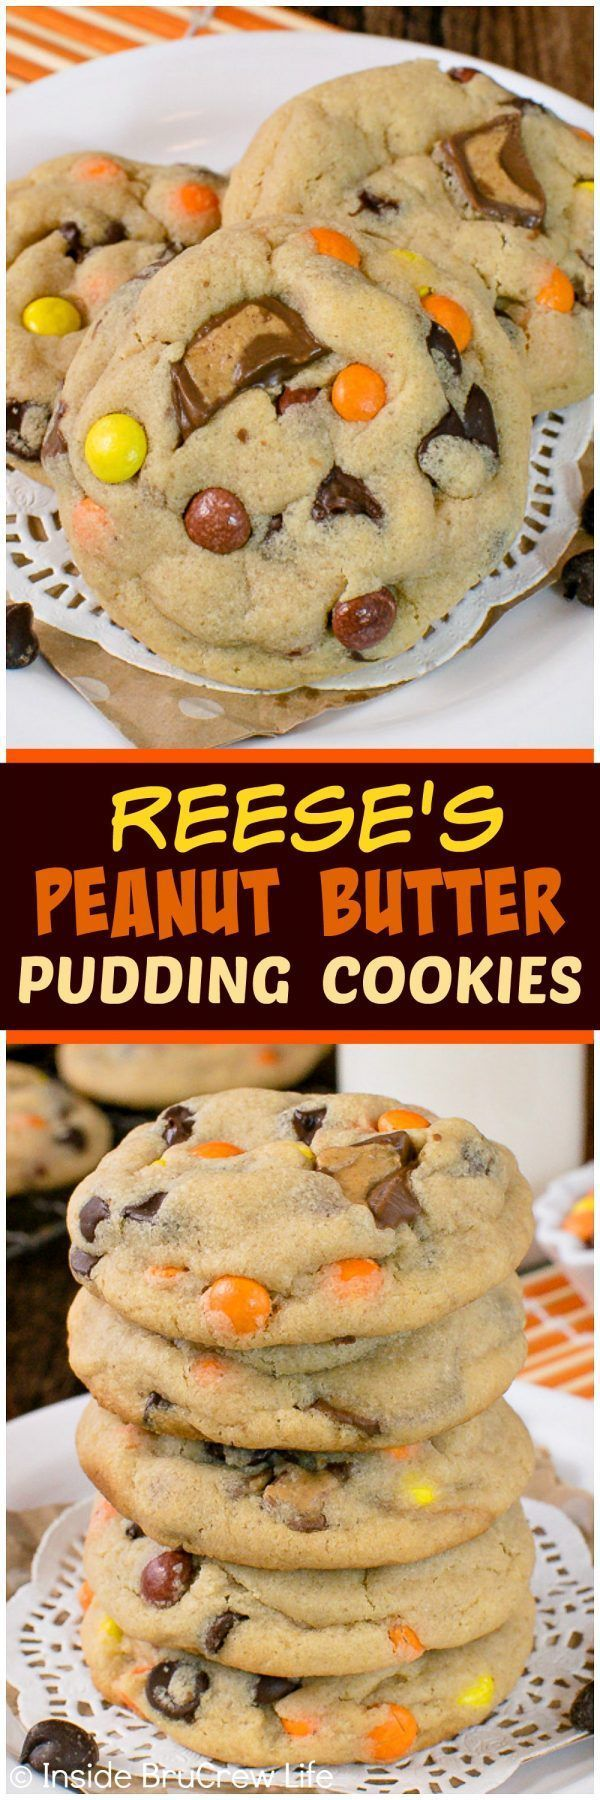 Reese's Peanut Butter Pudding Cookies - this soft and chewy cookie recipe is loaded with chocolate and candy!  Great dessert to fill the cookie jar with! (Mix)